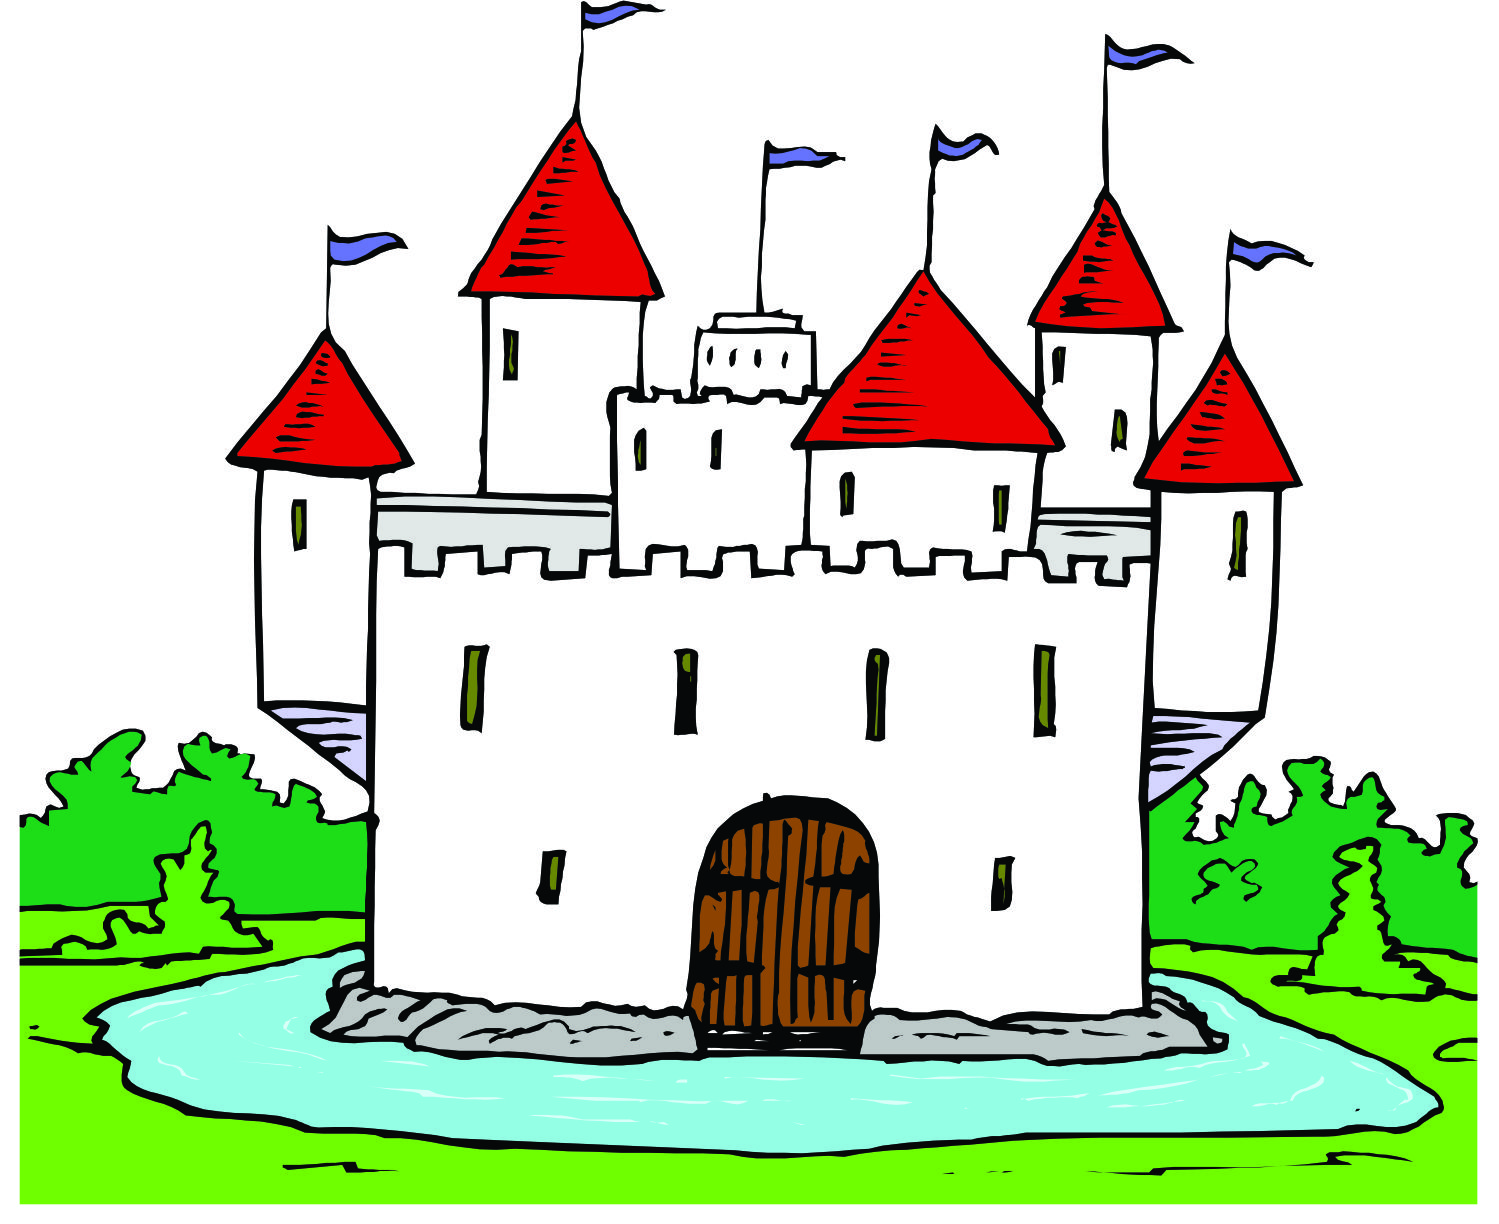 Castle cartoon clipart black and white stock Free Cartoon Castle Pictures, Download Free Clip Art, Free Clip Art ... black and white stock